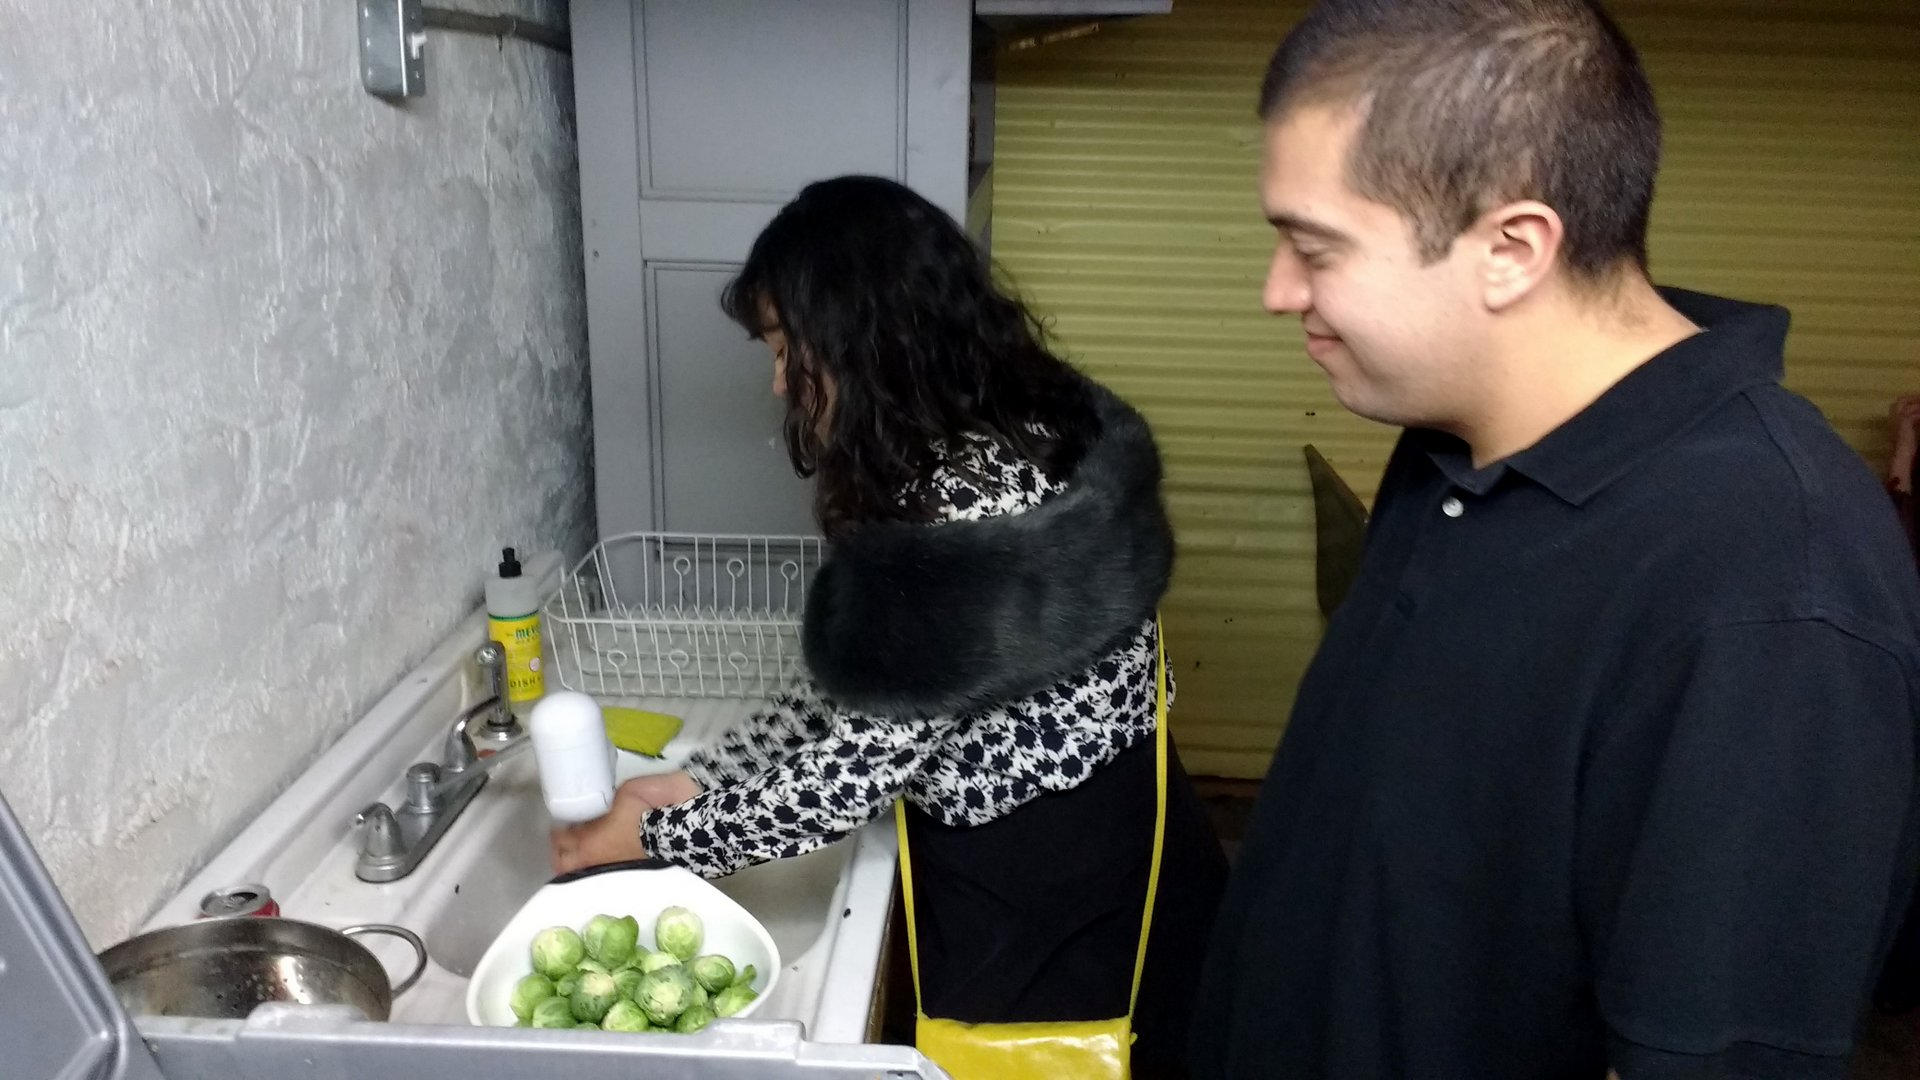 2 people washing Brussels sprouts at a sink